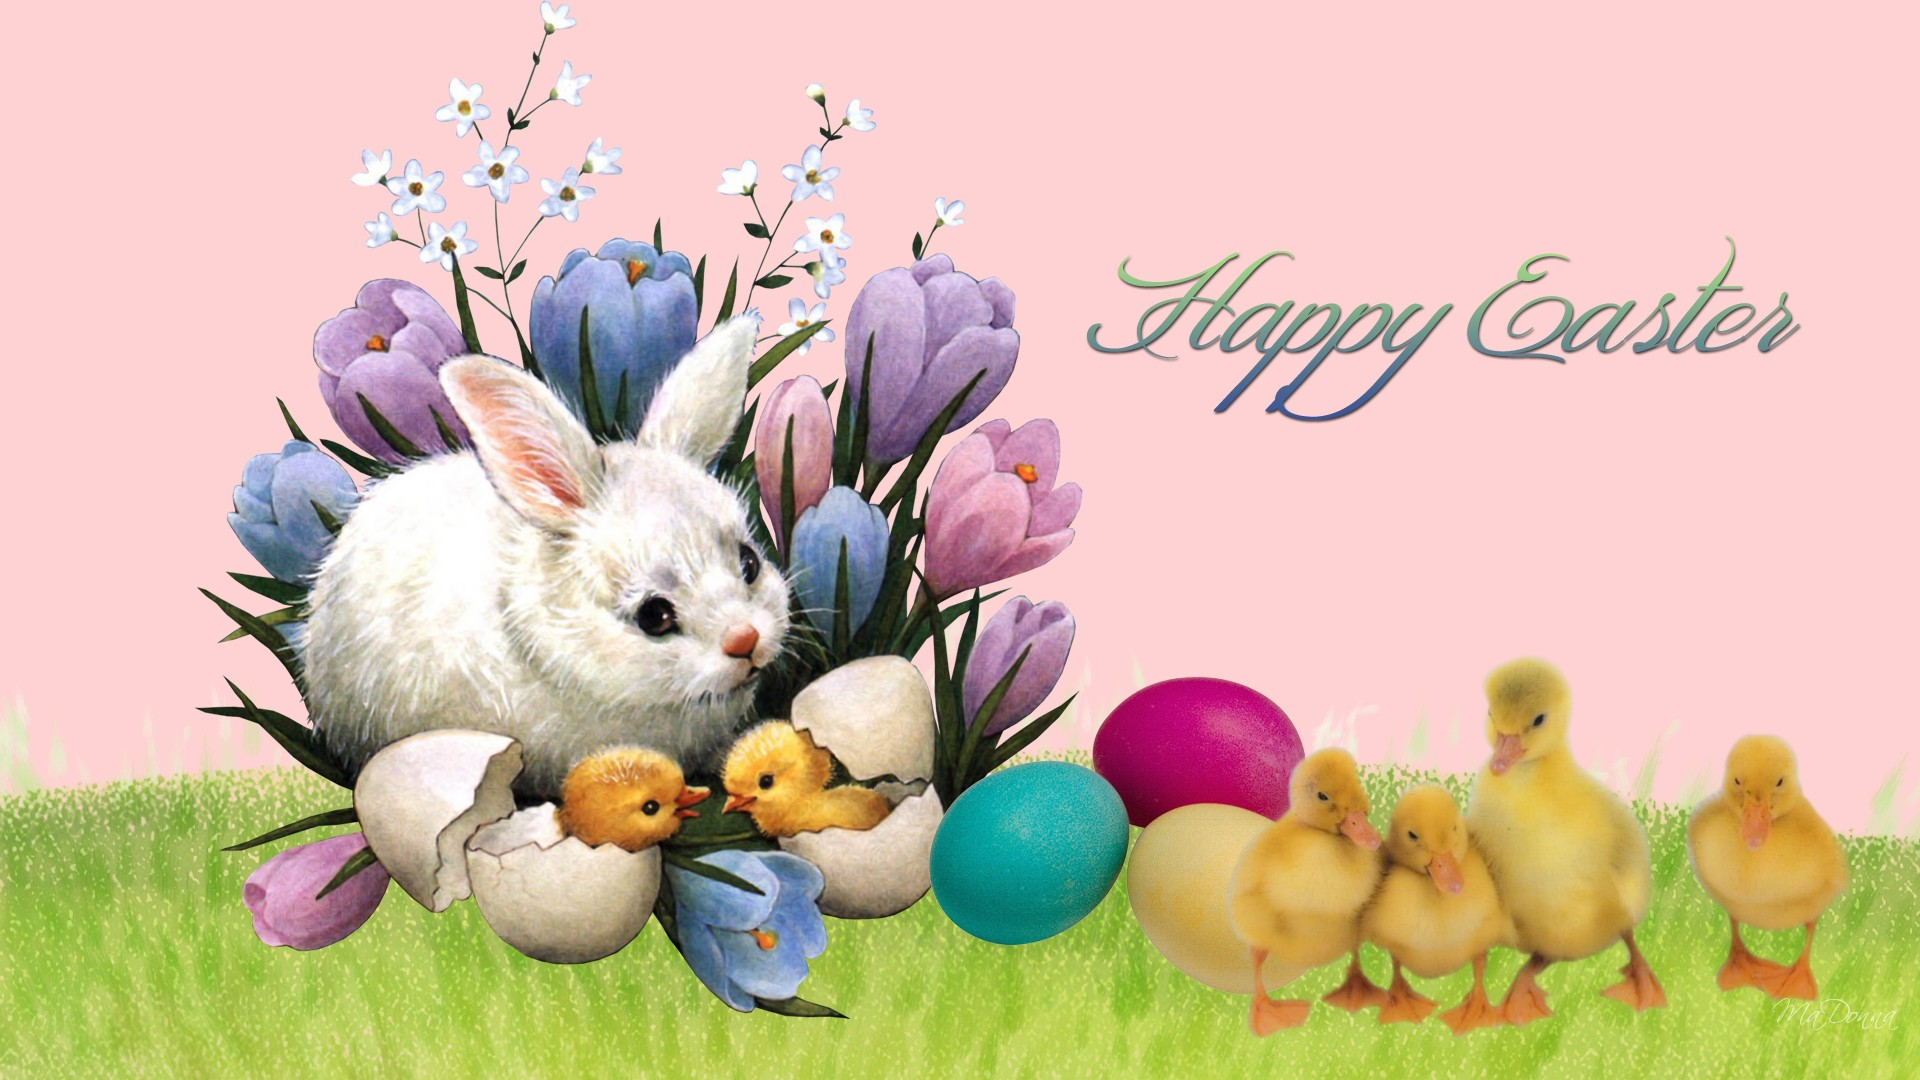 Bunny and Chick Easter Wallpaper 1920x1080